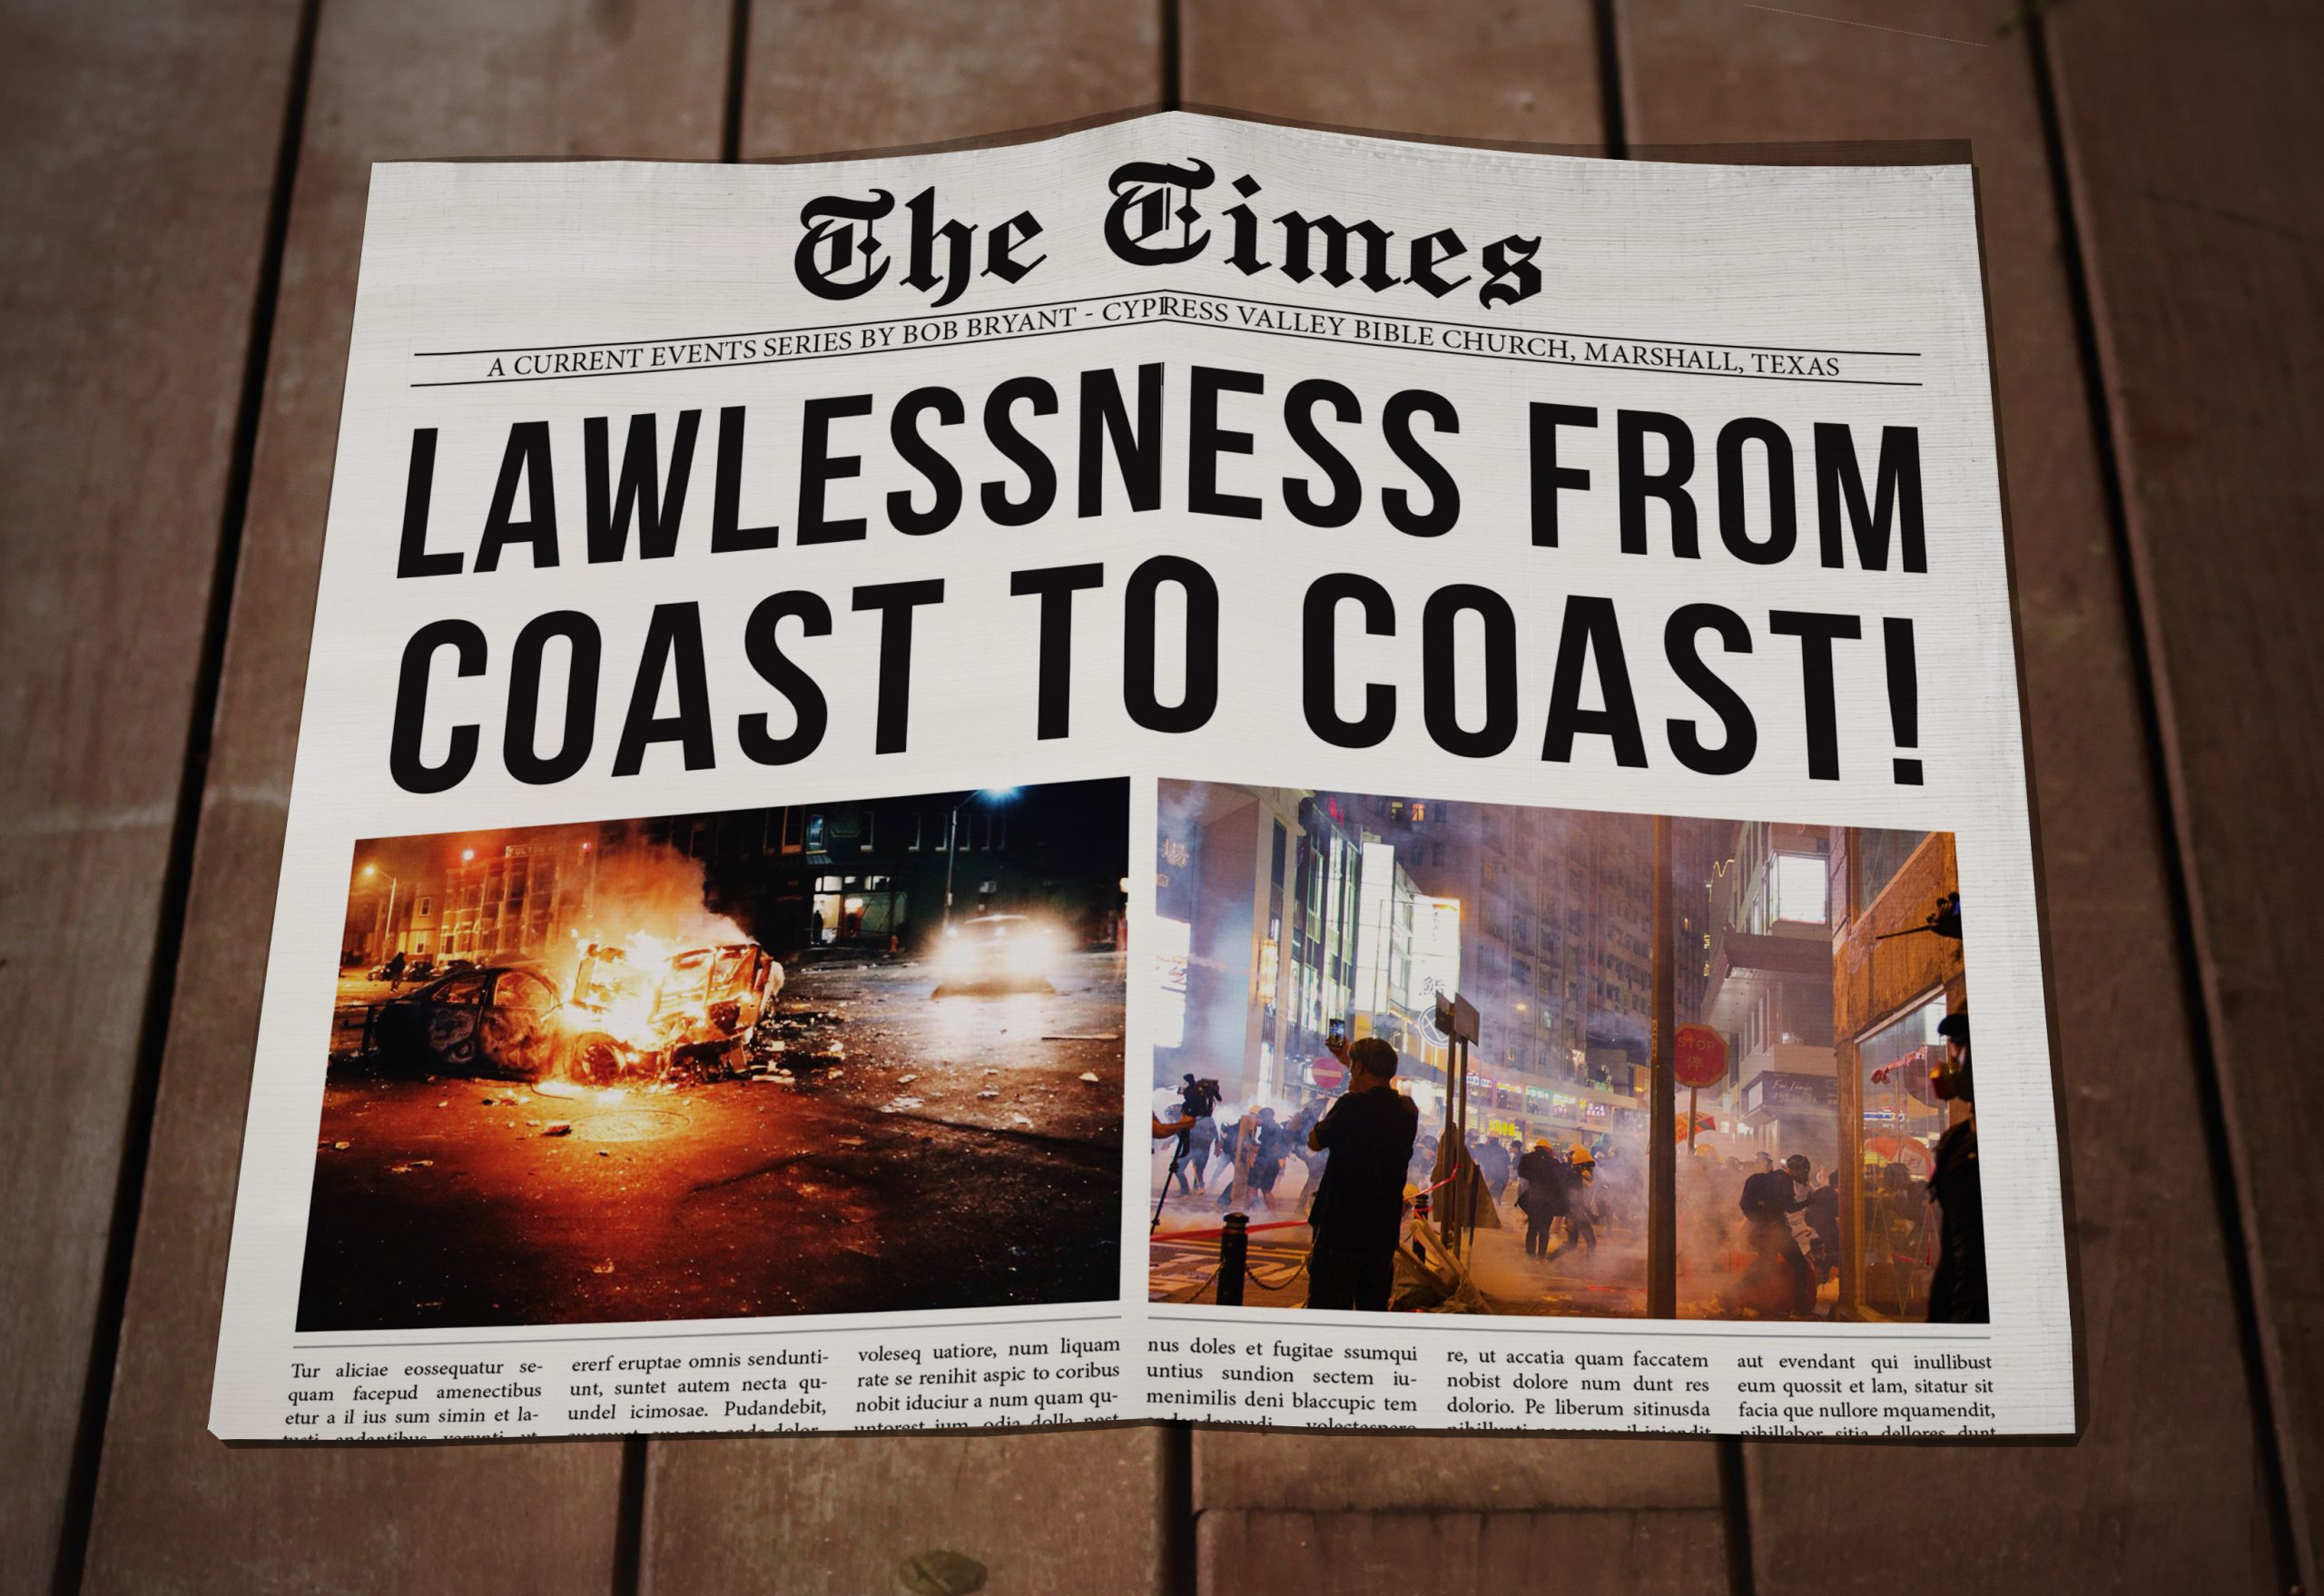 Lawlessness from Coast to Coast